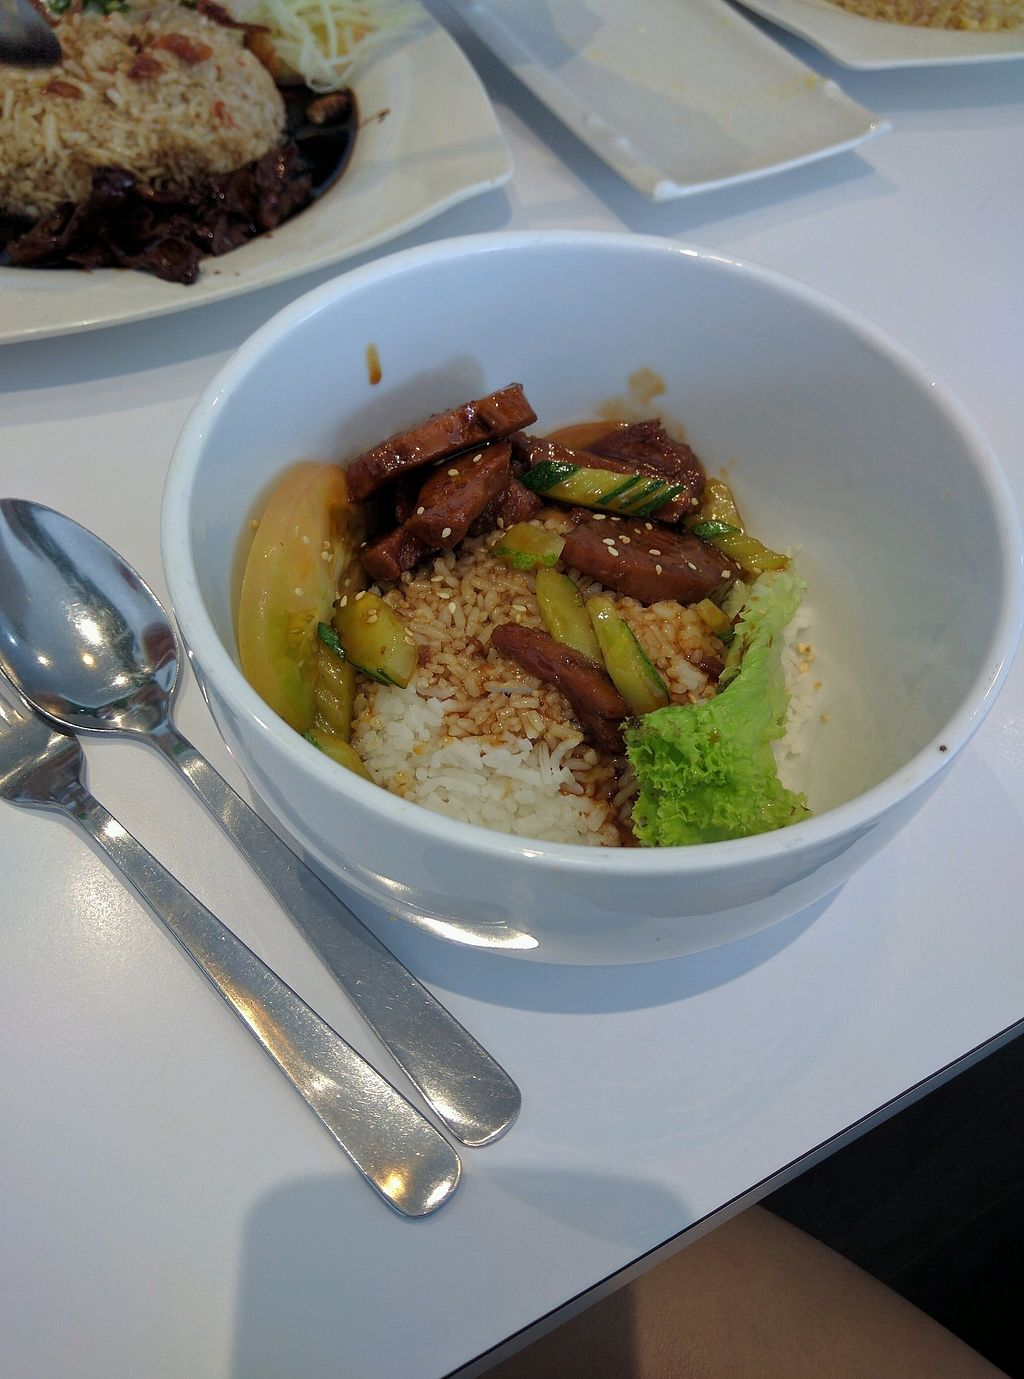 "Photo of The Garden Restaurant - Krystal Point  by <a href=""/members/profile/Summer_Tan"">Summer_Tan</a> <br/>Vegetarian Sweet & Sour Pork Ribs Rice - RM10.90 Just the average mock meat with meh sauce. Portion is small, esp for the price. Was not satisfying <br/> February 2, 2018  - <a href='/contact/abuse/image/53118/353823'>Report</a>"